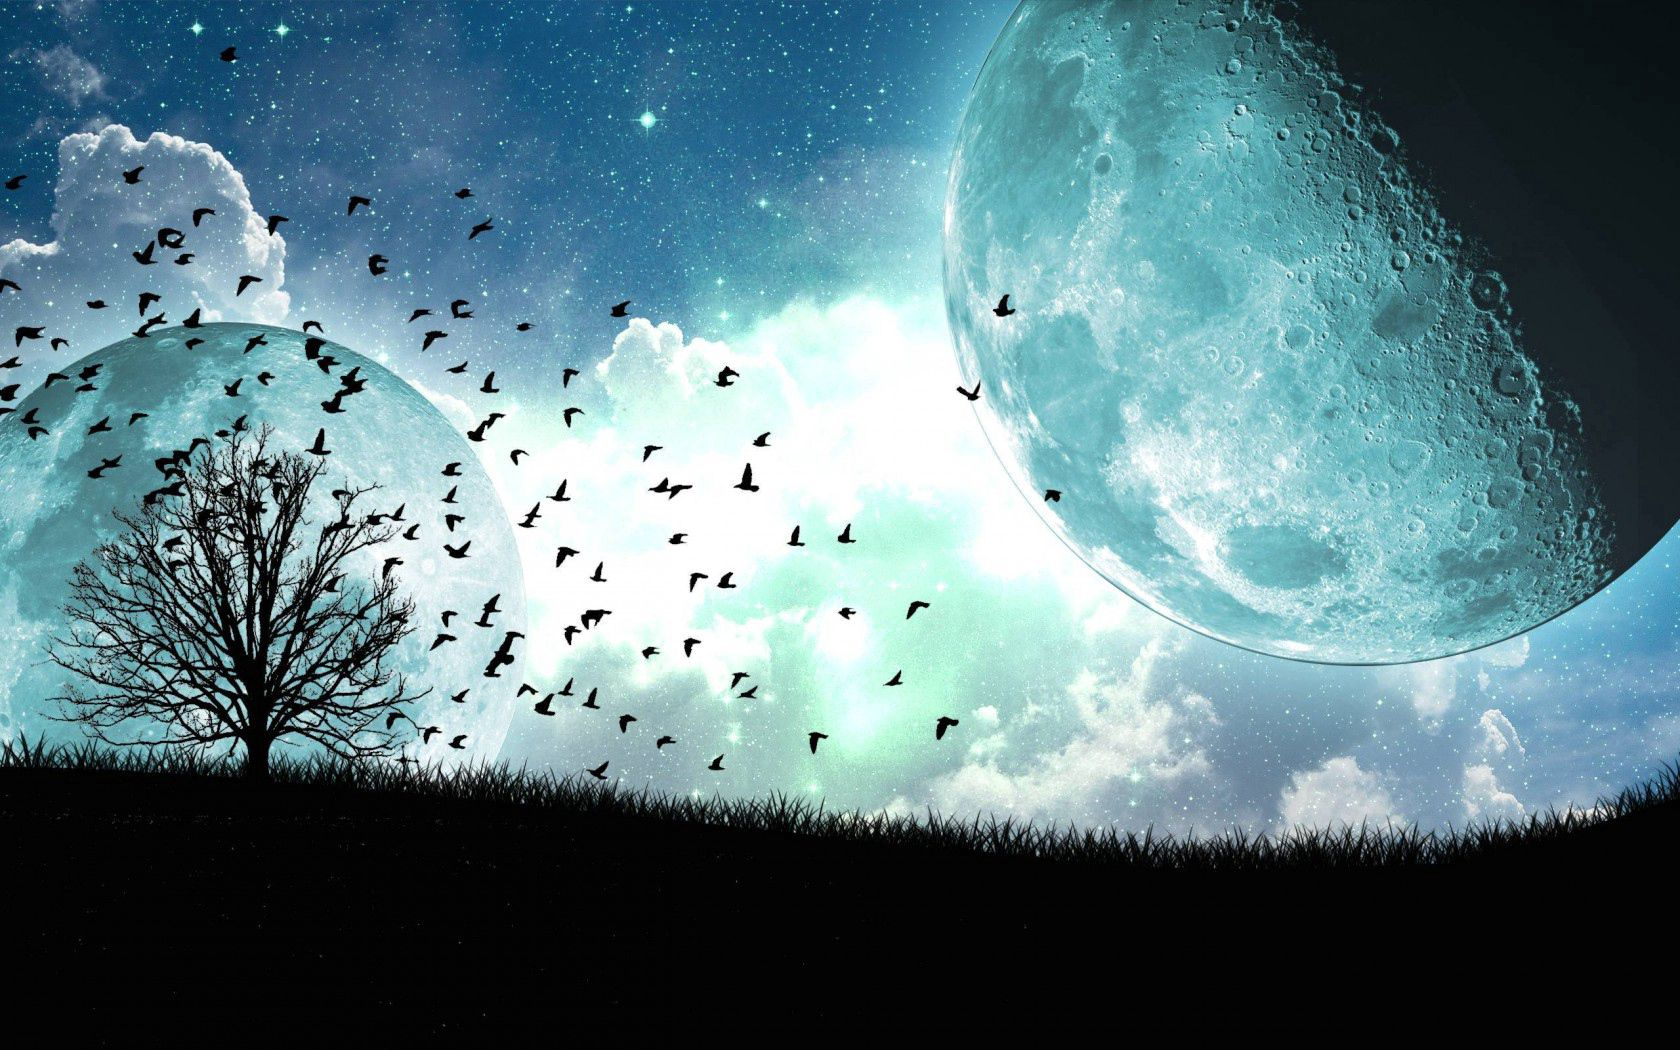 89005 free wallpaper 720x1280 for phone, download images Birds, Art, Moon, Wood, Tree, Flight, Satellite 720x1280 for mobile